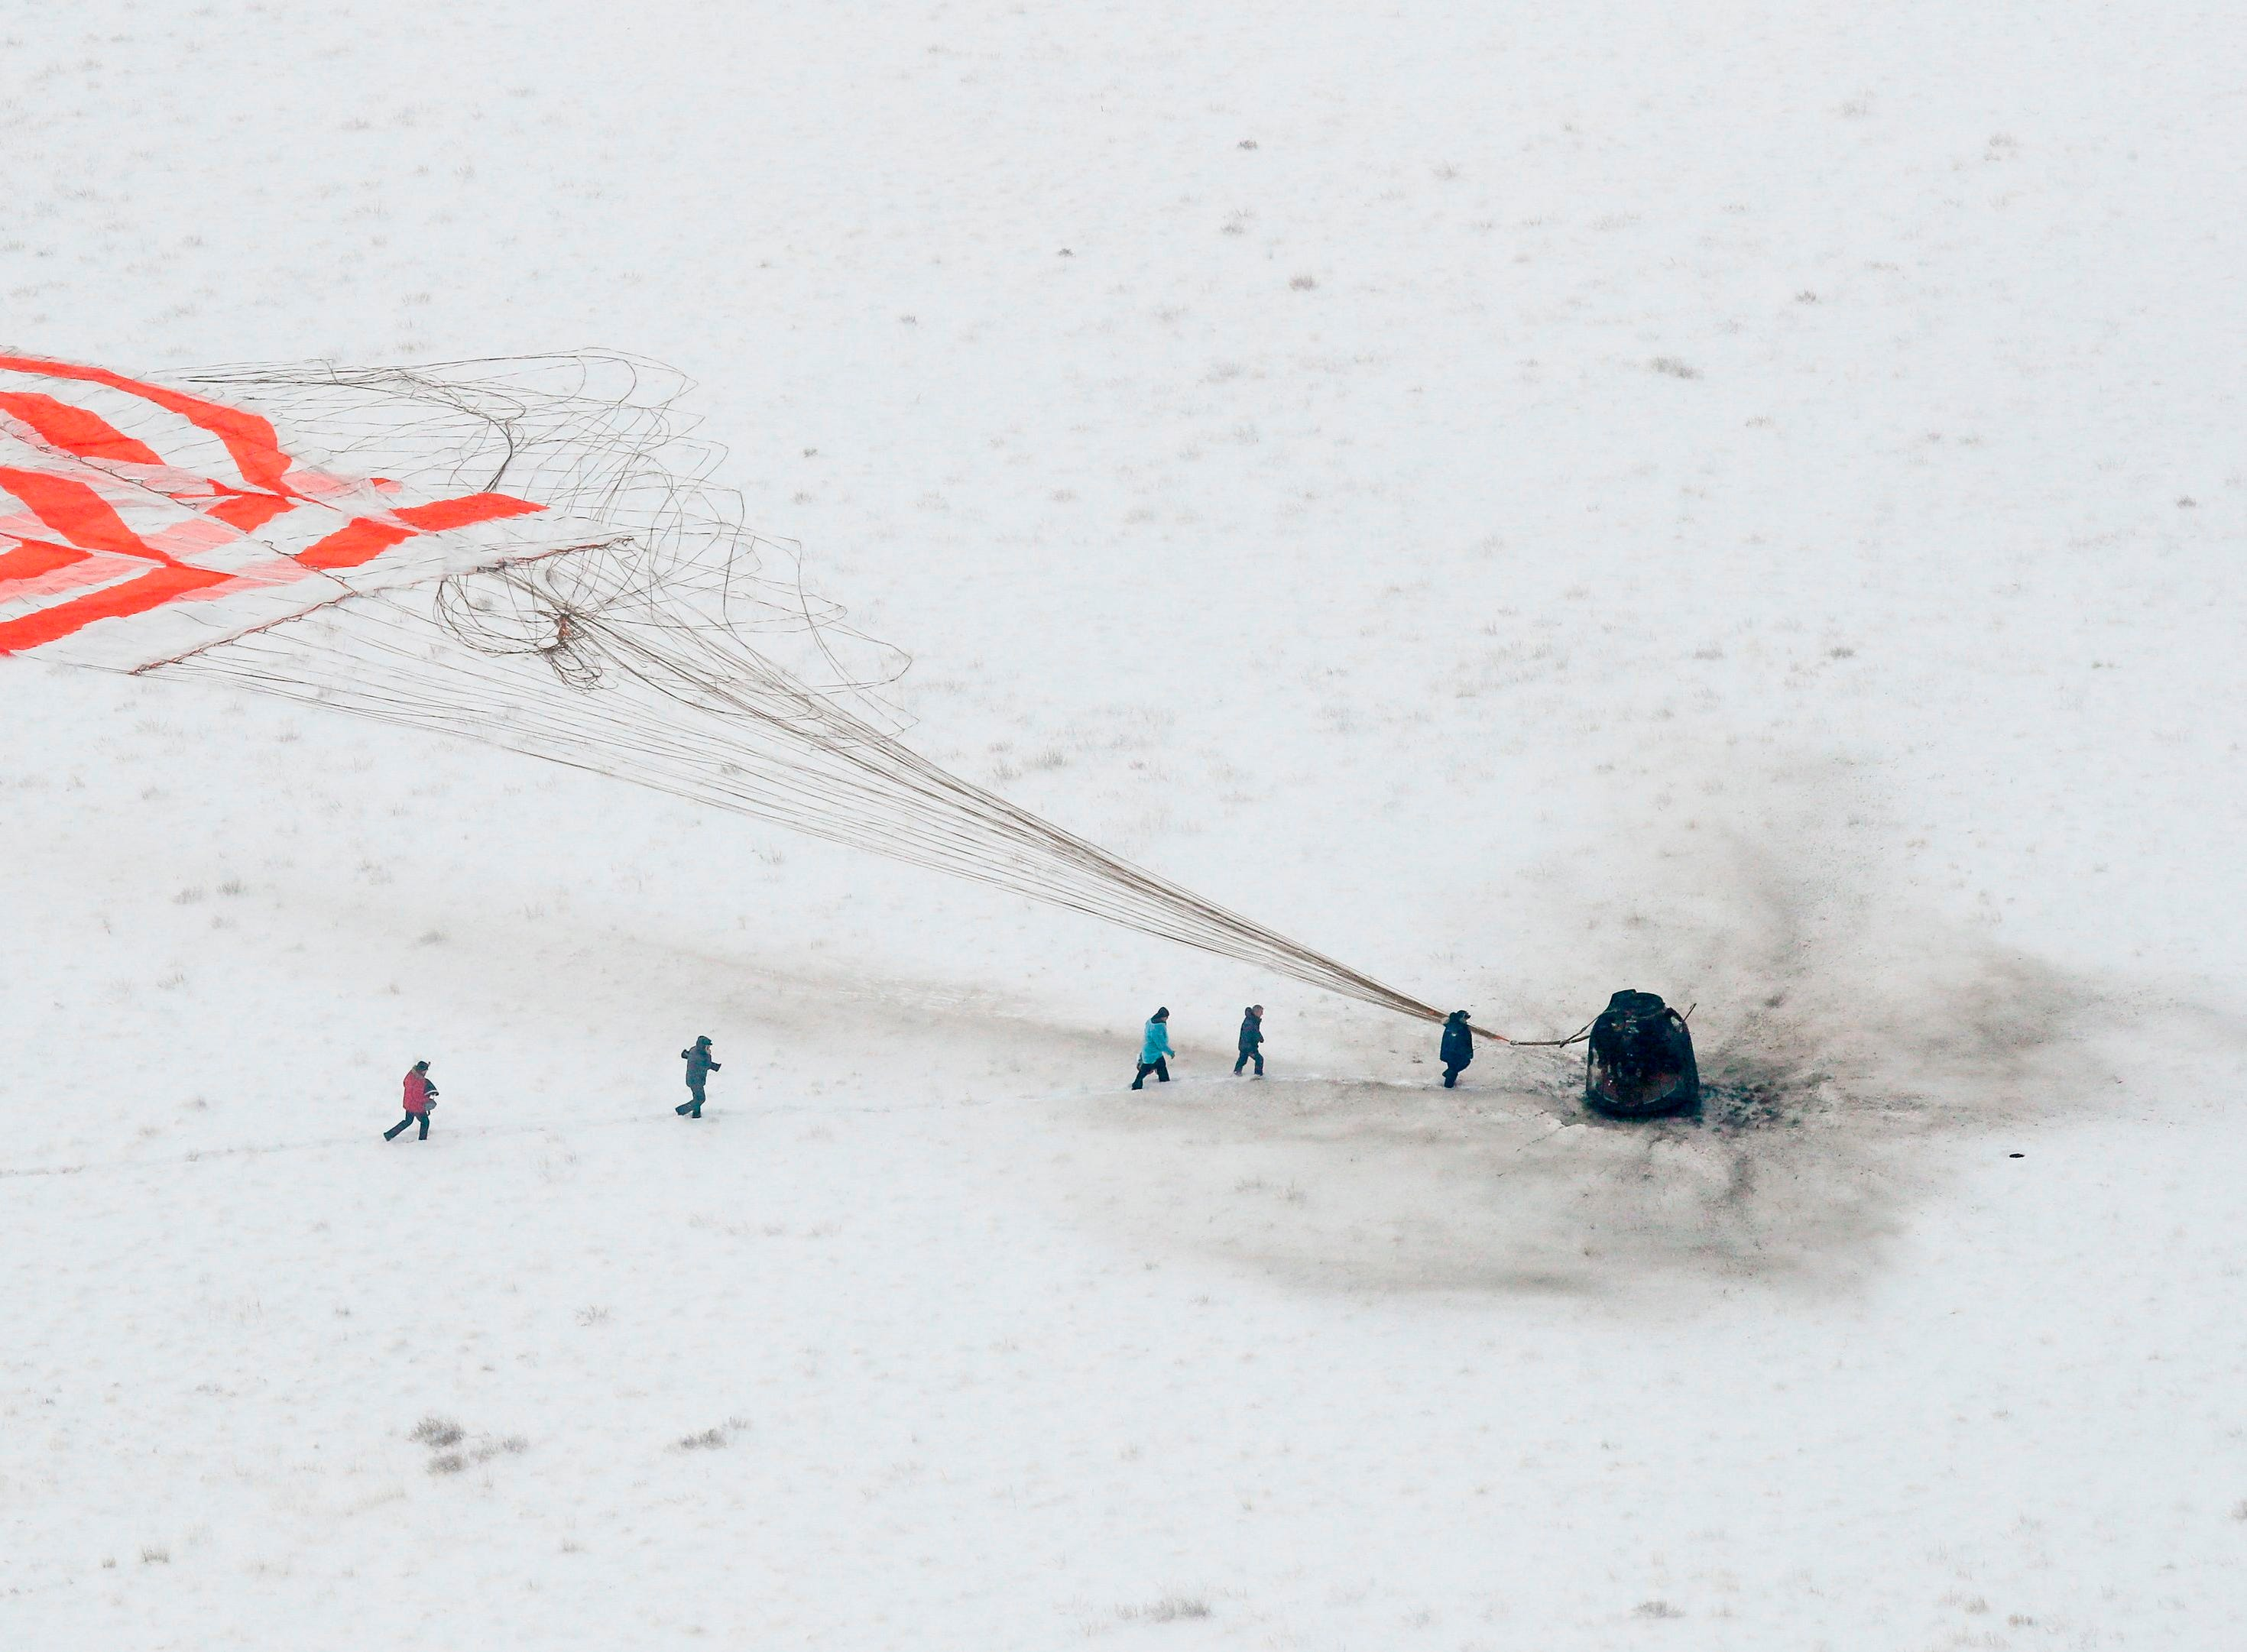 A search and rescue team approaches the Soyuz MS-09 capsule carrying the International Space Station crew after its landing in a remote area outside the town of Dzhezkazgan Kazakhstan, Dec. 20, 2018.